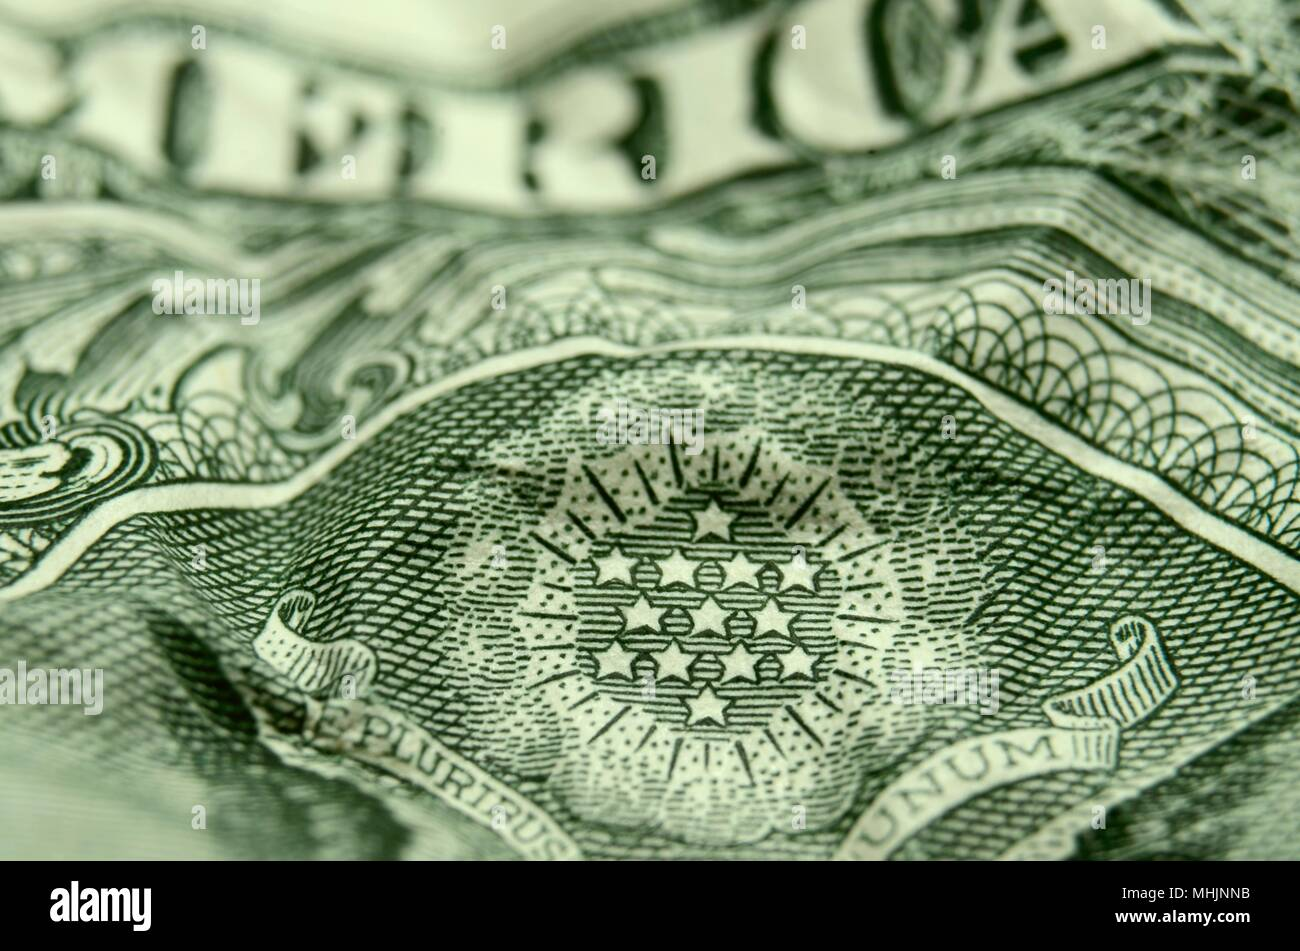 Shallow focus of stars from the great seal on on a wrinkled  American dollar bill. Stock Photo